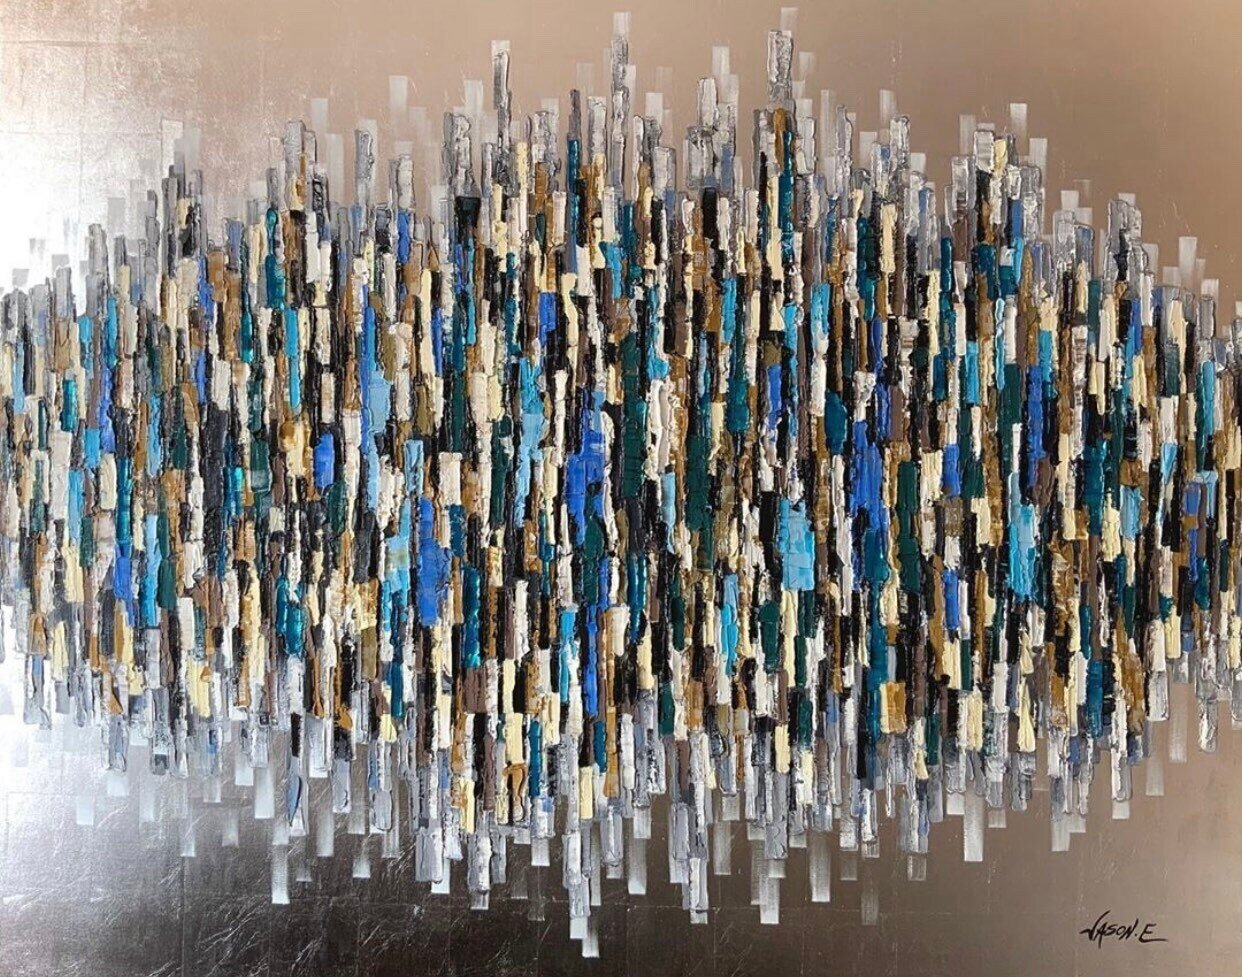 SILVER LEAF Abstract Spontaneous Large Wall Oil on Canvas Painting with Silver Leaf Made to your preferred Size